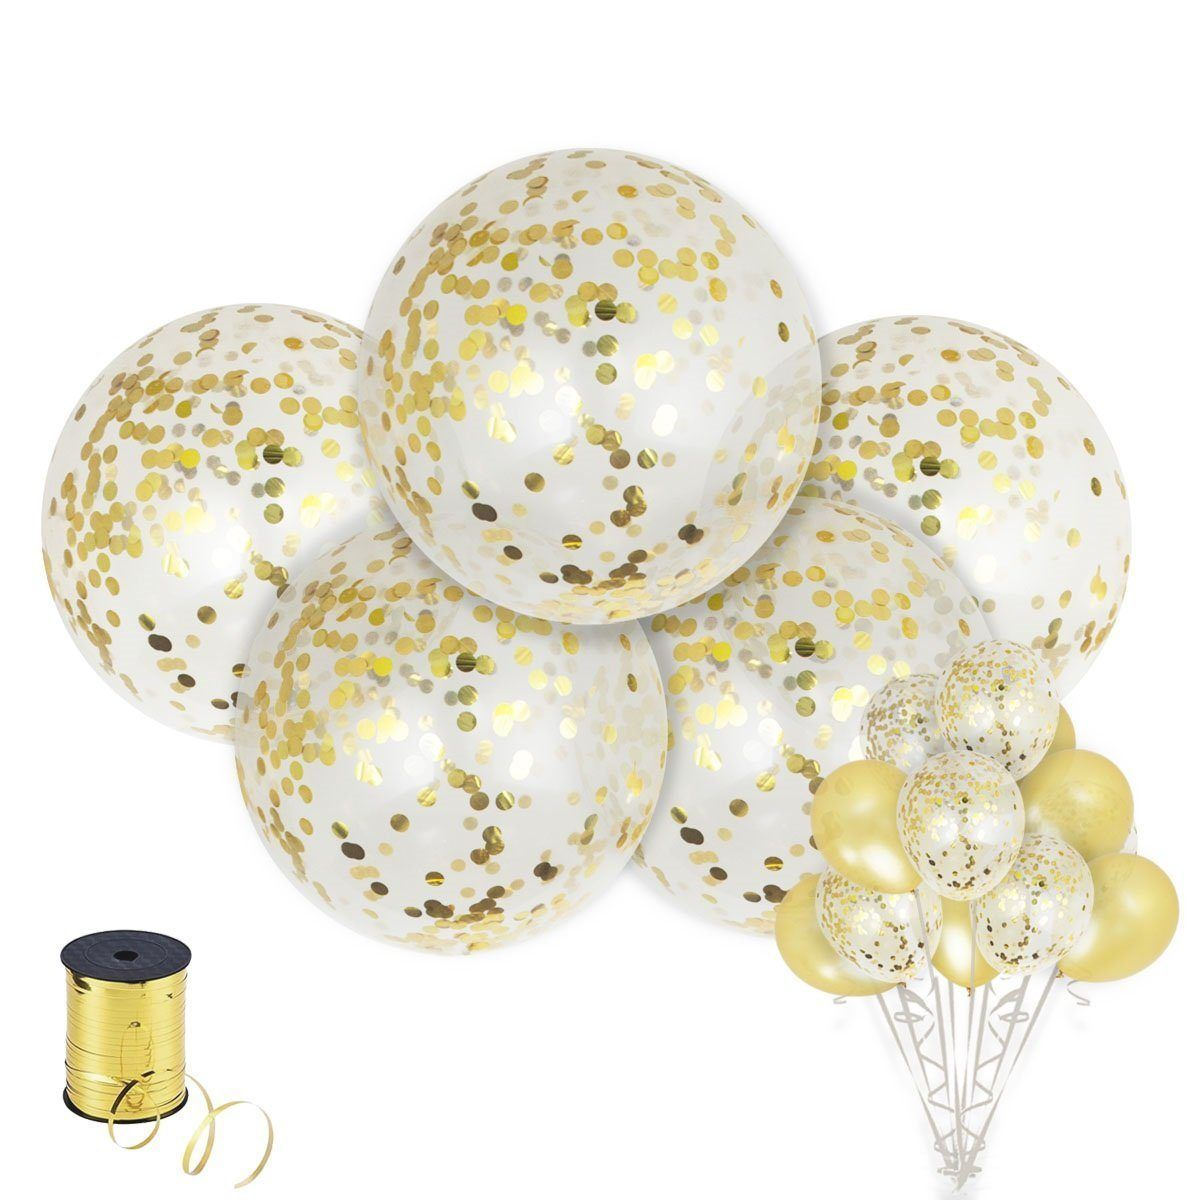 Latex Glitter Balloons for Party//Birthdays //Wedding//Festivals Christmas and Event Decorations 6 Pcs Giant Latex Balloon with Gold Confetti 36 Inch Jumbo Confetti Balloons